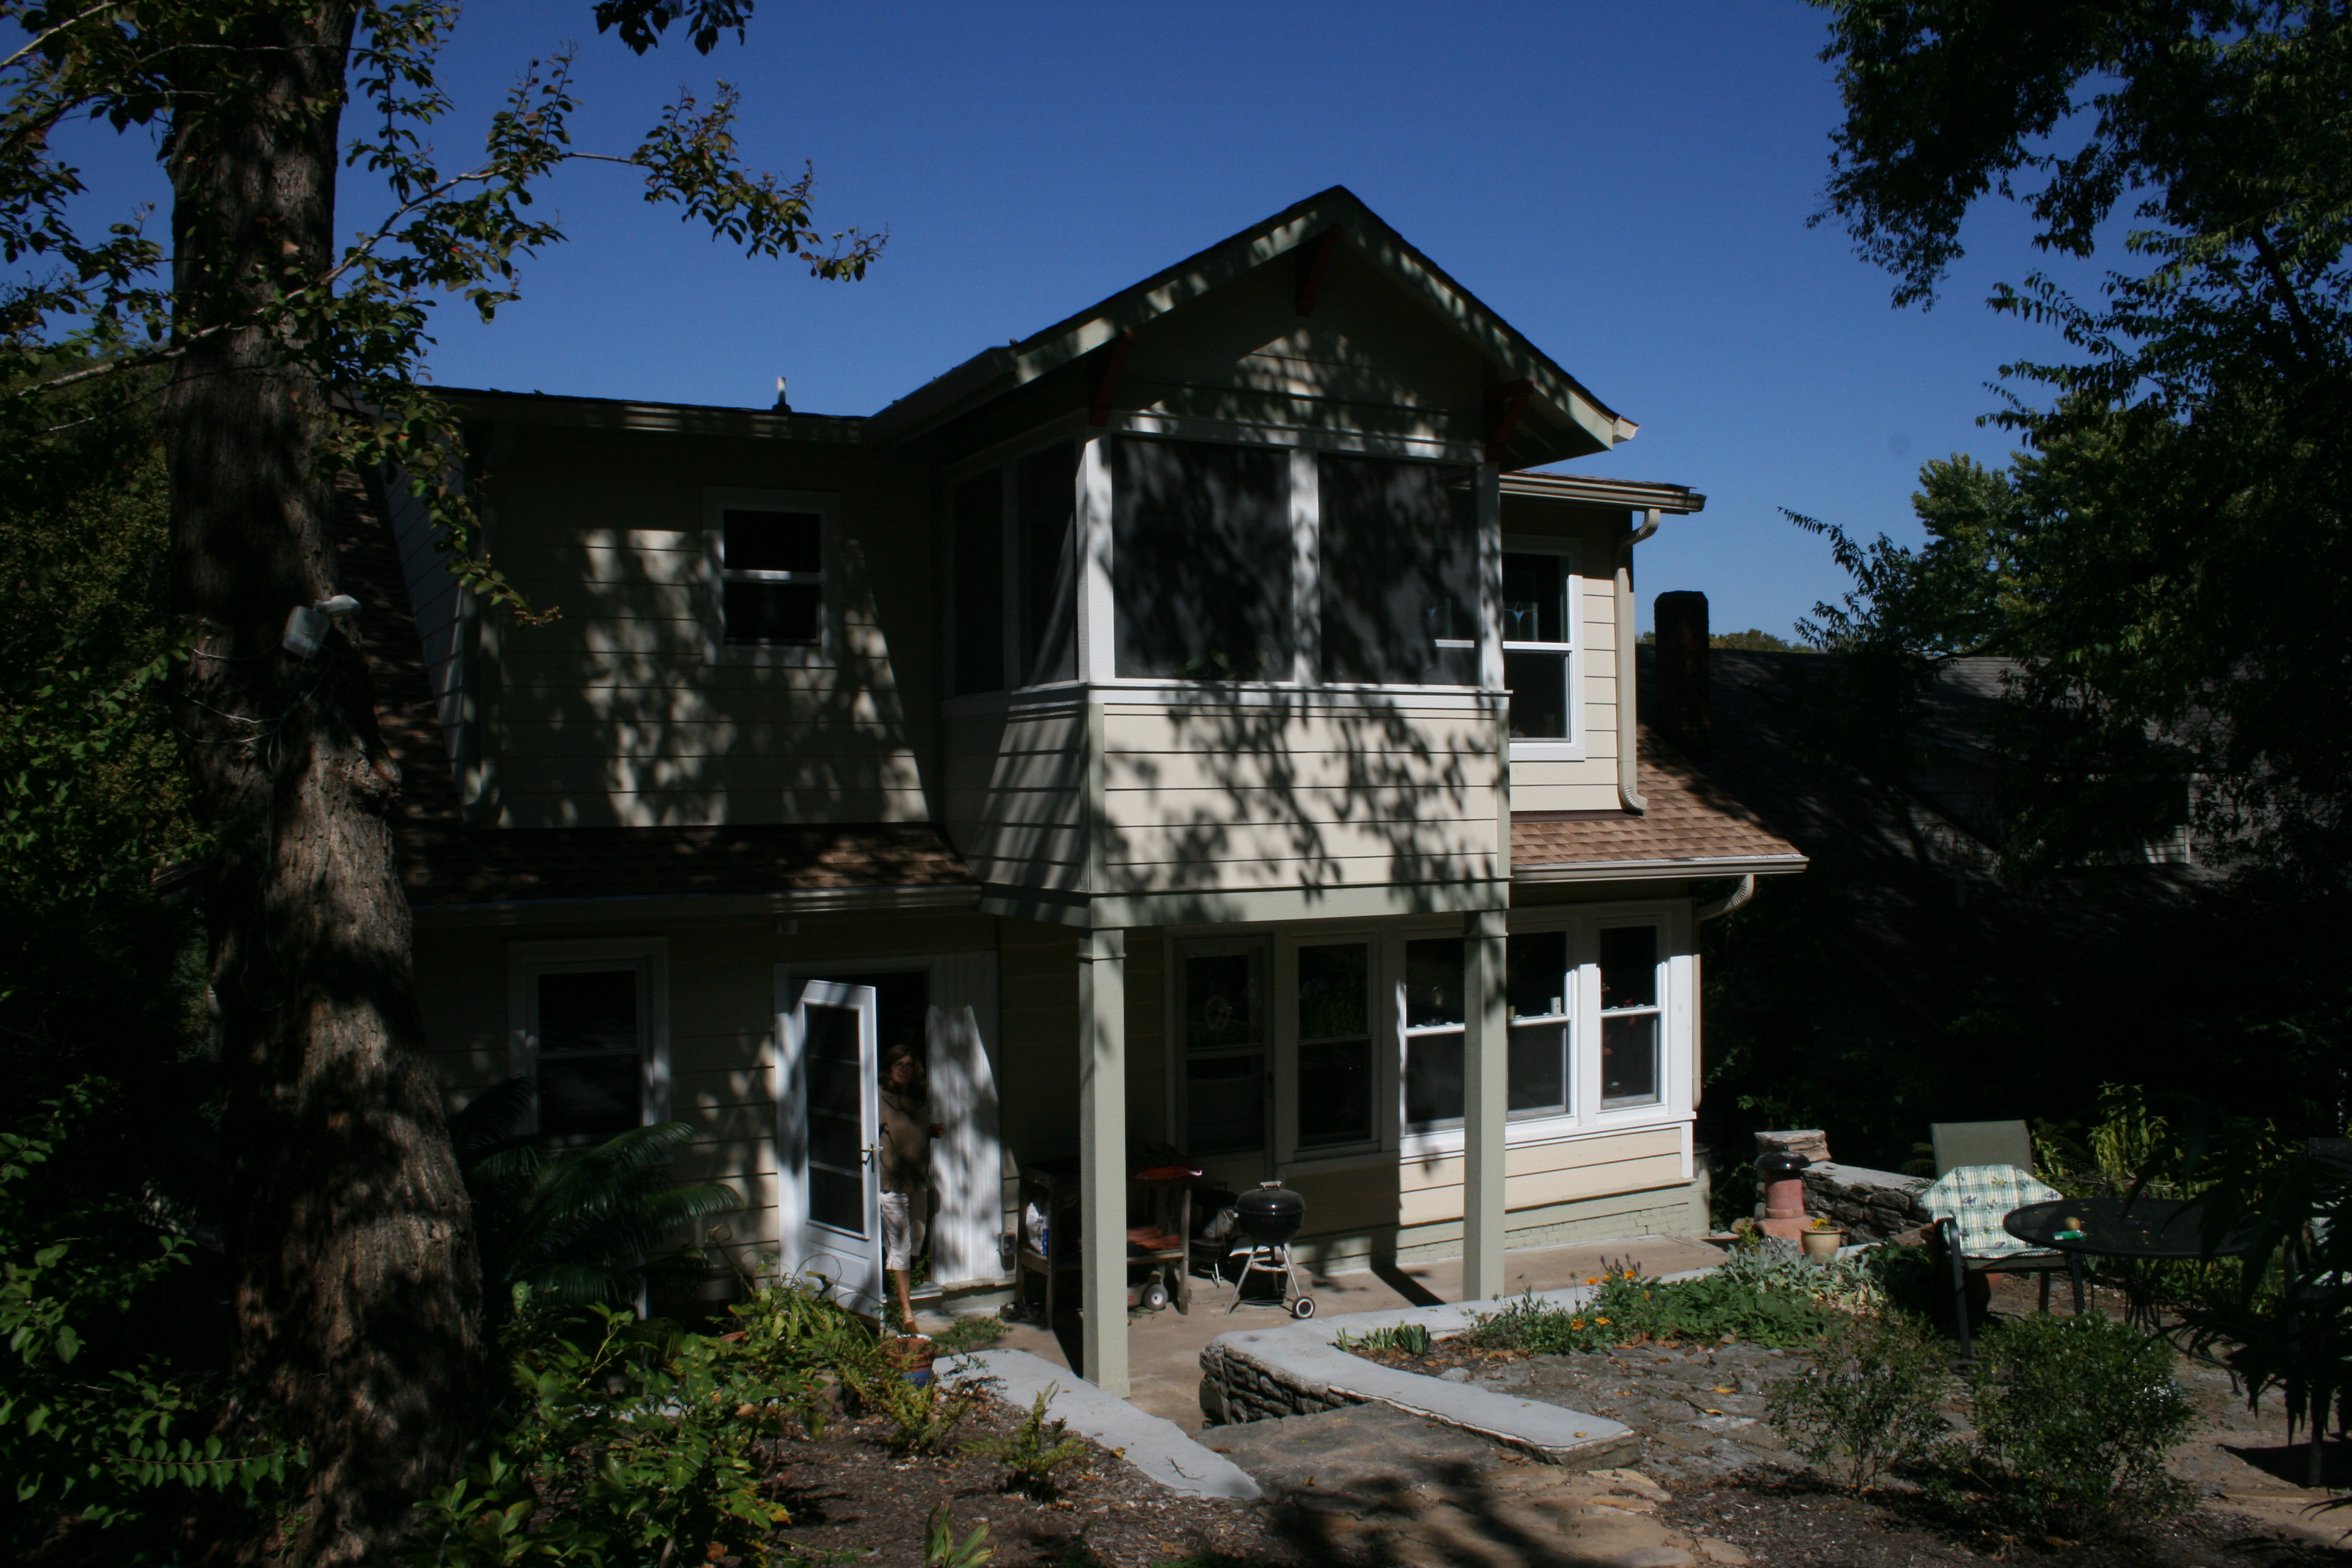 Renovation of a Home on Acklen Avenue